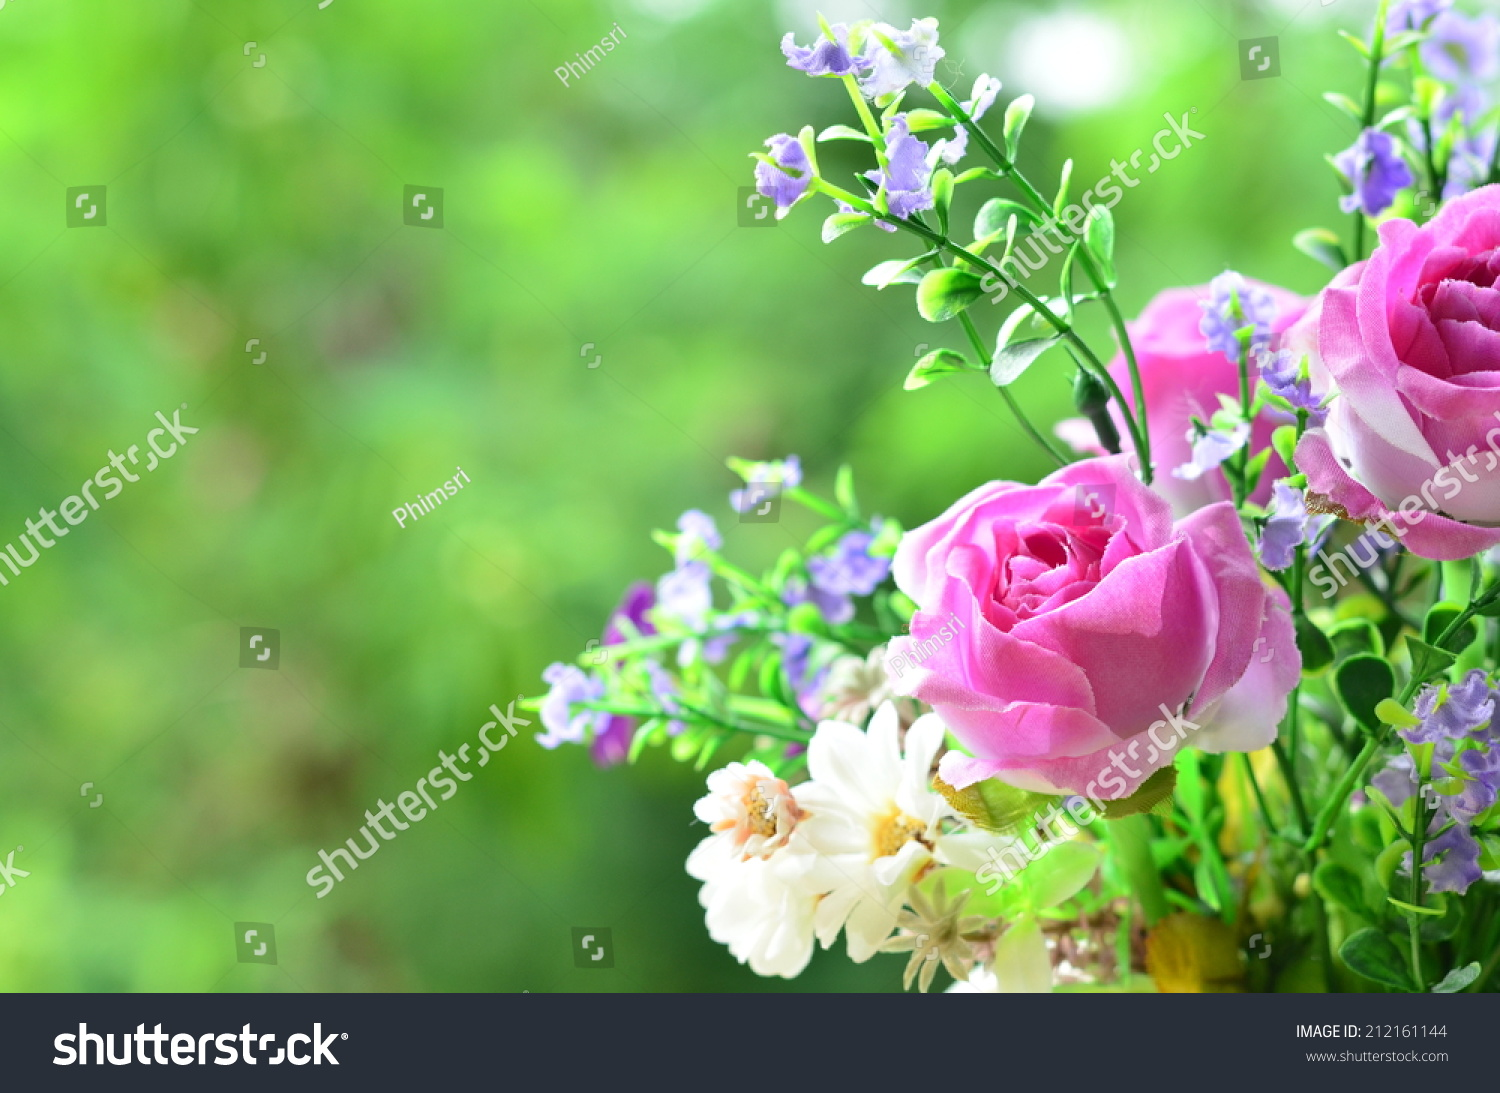 Good Morning Bouquet Flowers Stock Photo (Edit Now) 212161144